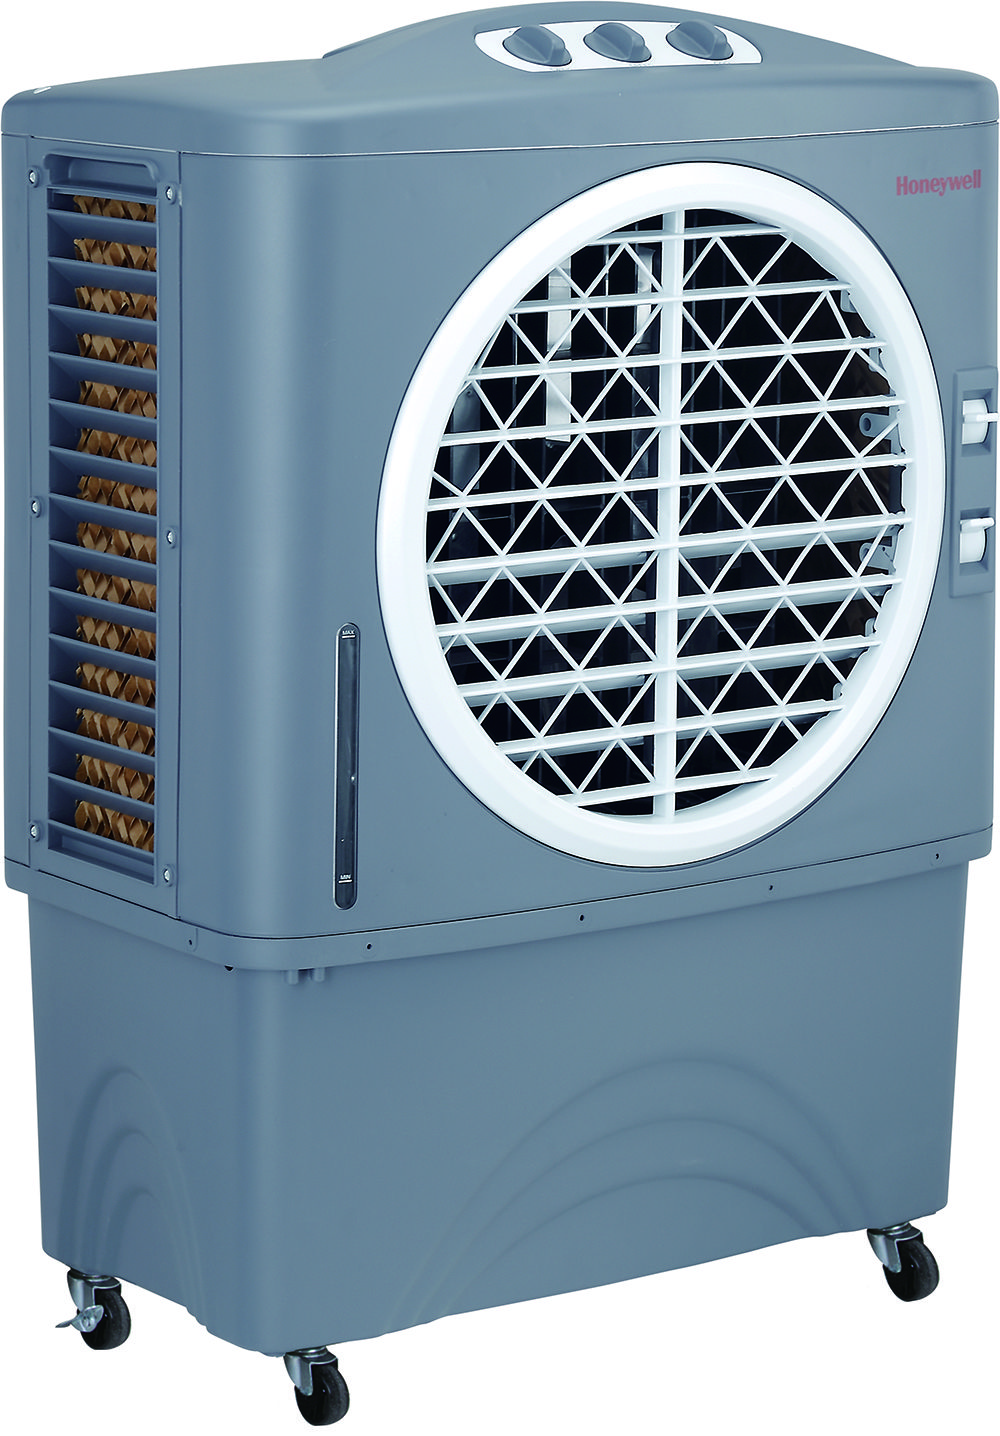 Honeywell CO48PM Commercial Portable Evaporative Air